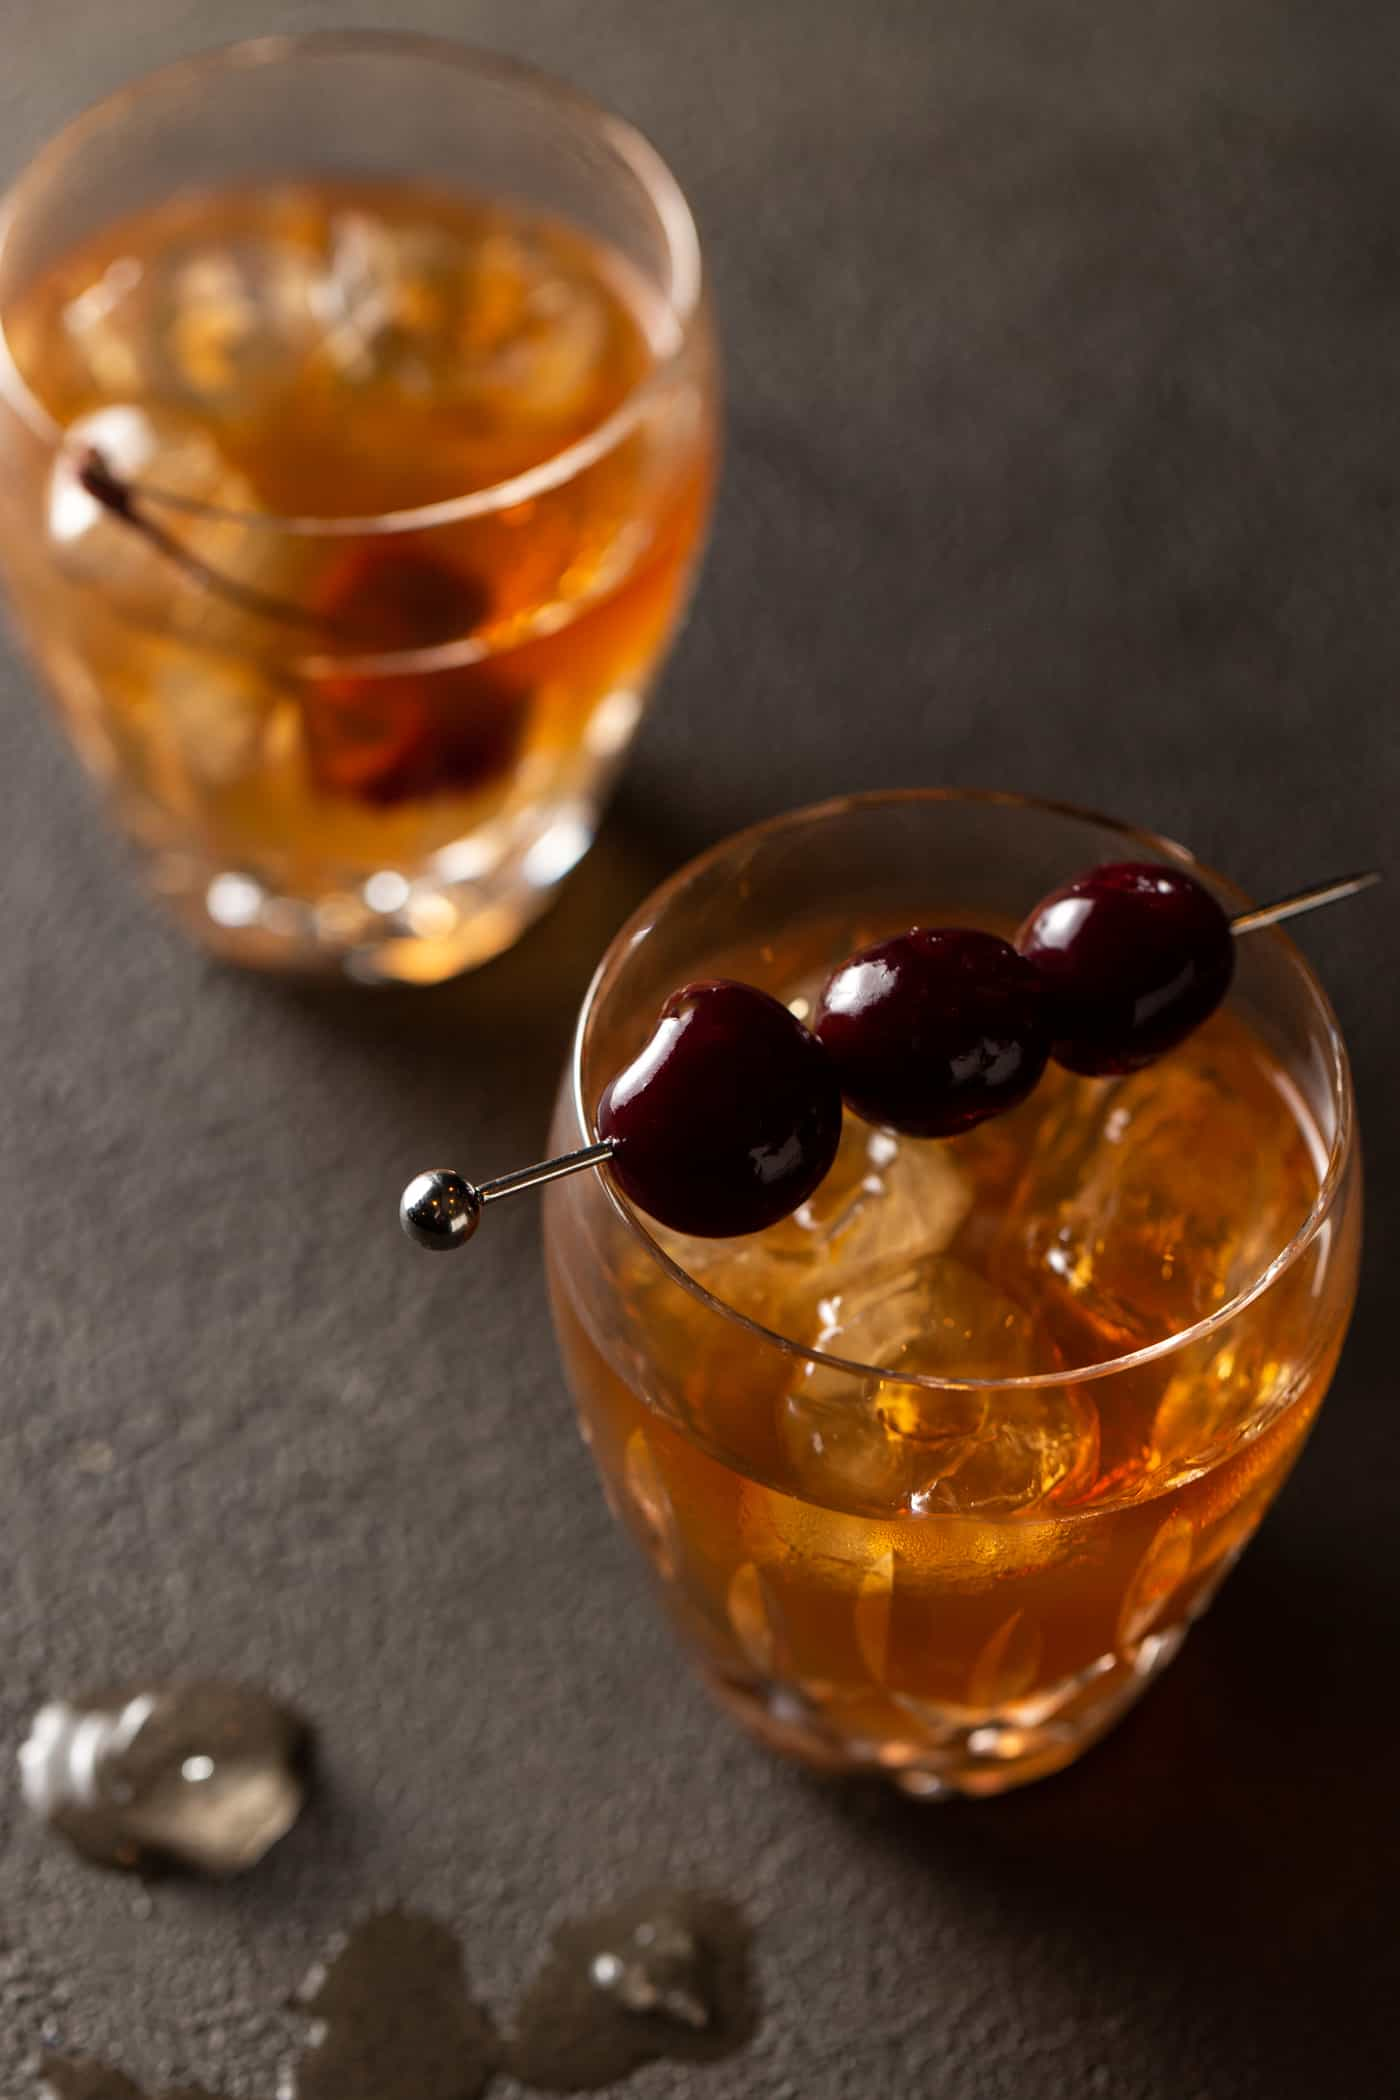 Top down image of classic Manhattan cocktail recipe in 2 old fashioned glasses.